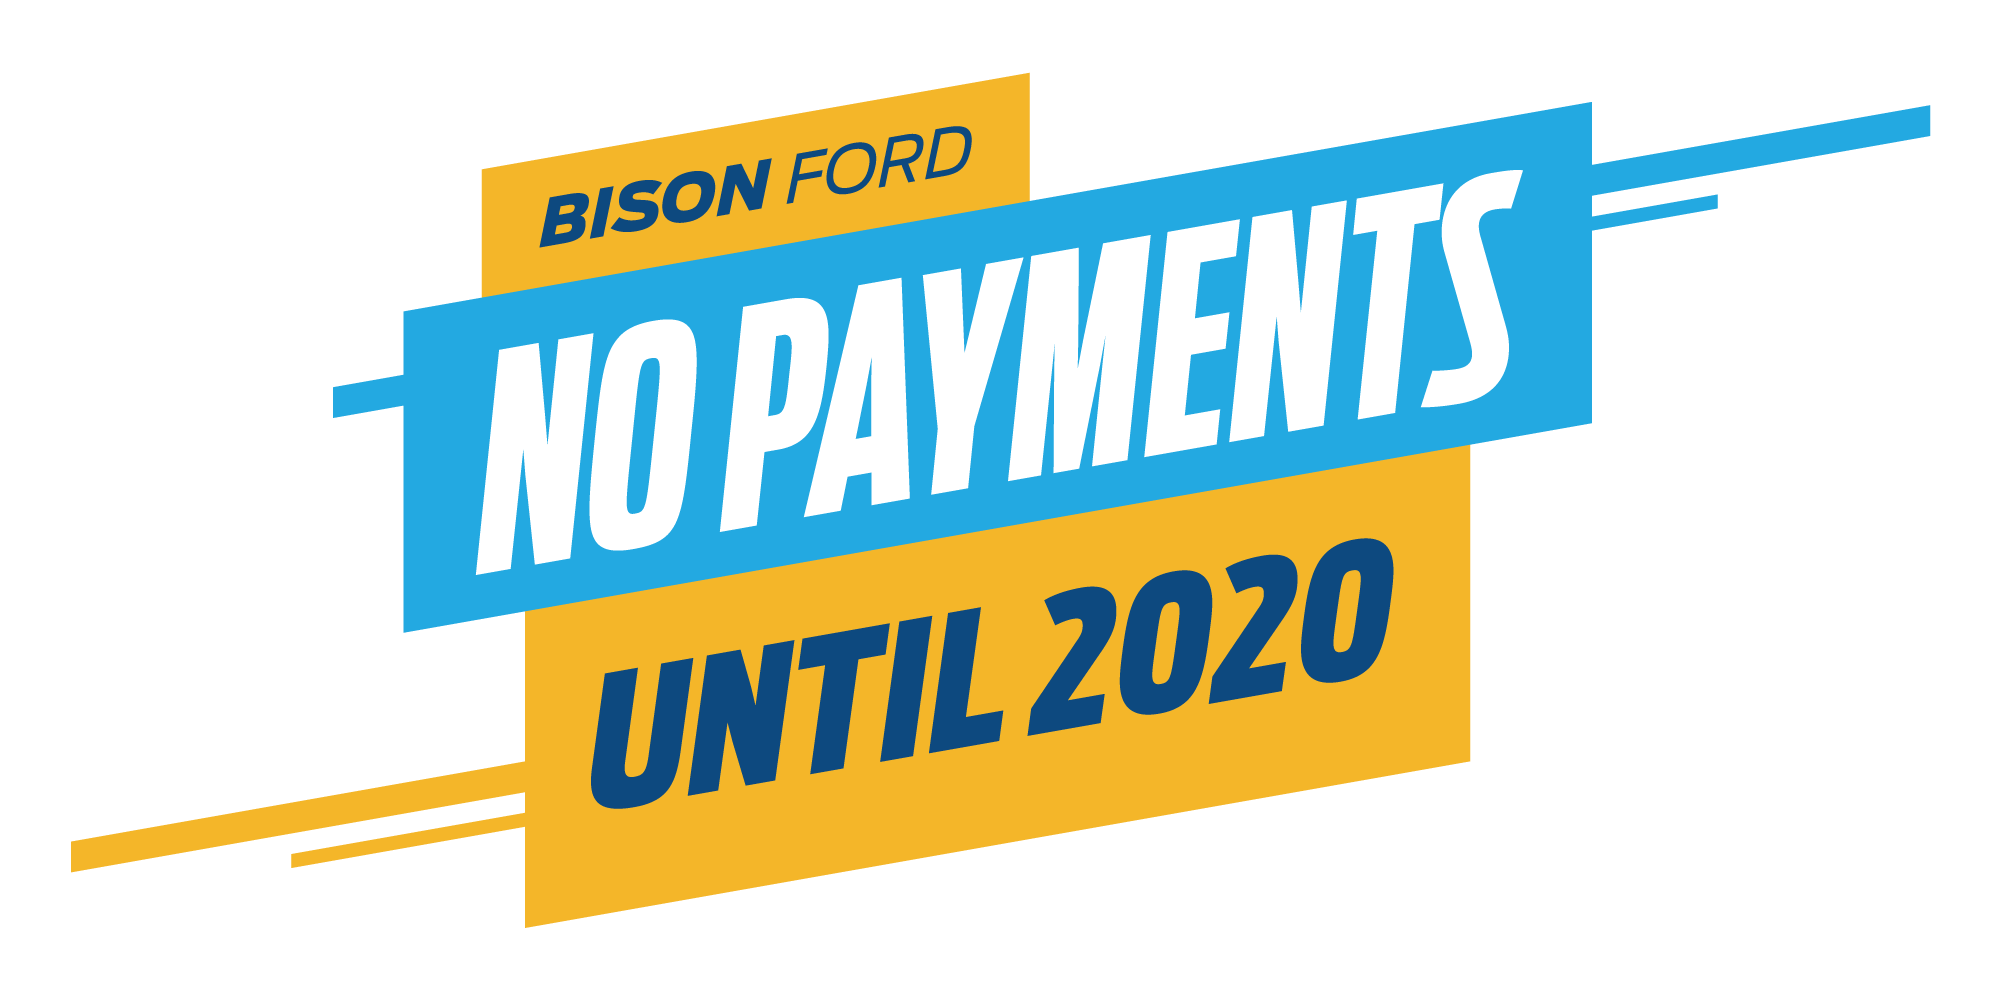 Bison Ford No Payments Until 2020